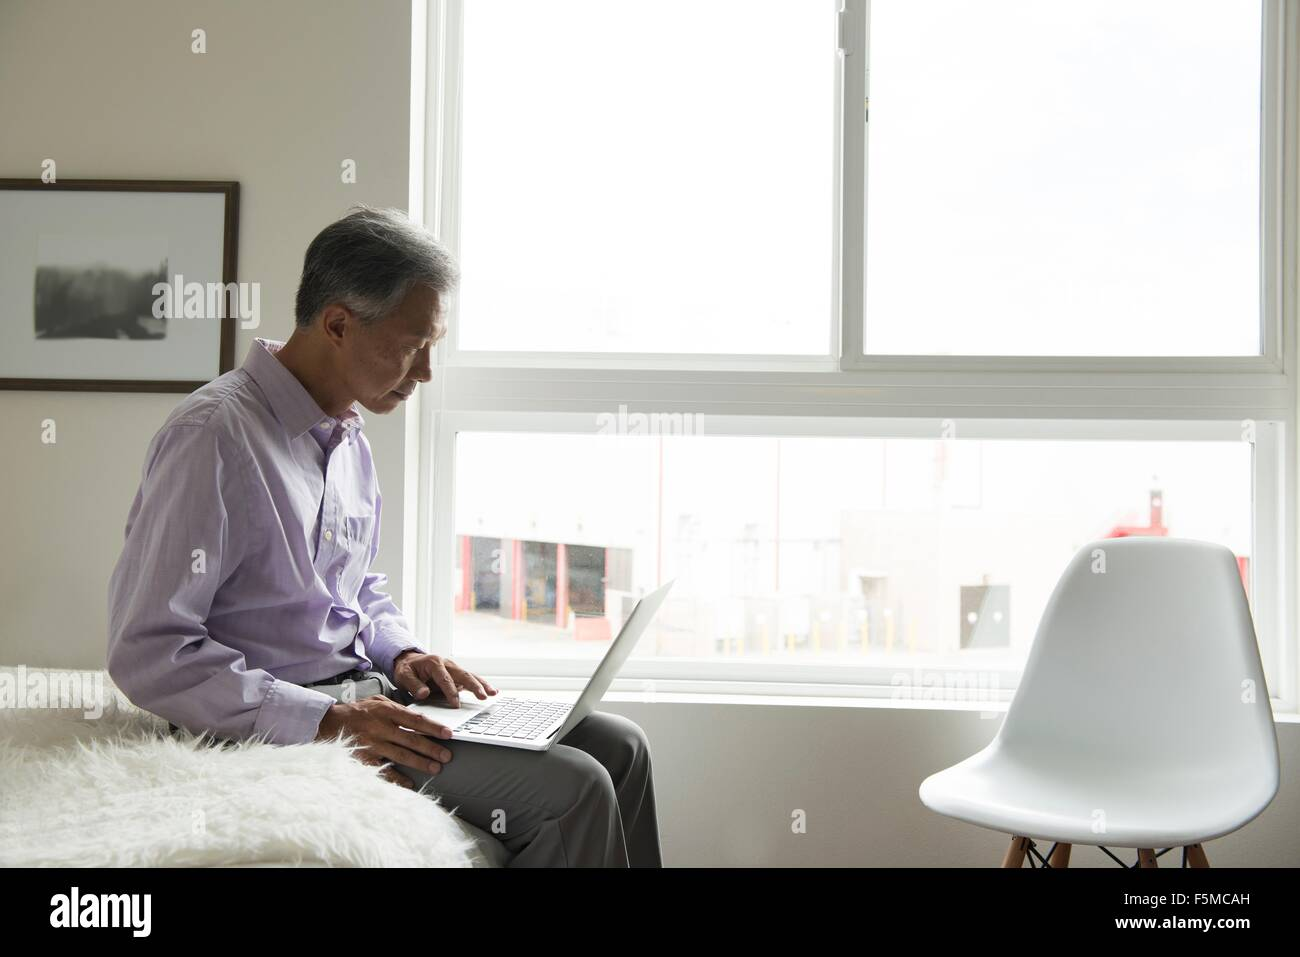 Side view of mature man sitting on edge of bed using laptop - Stock Image